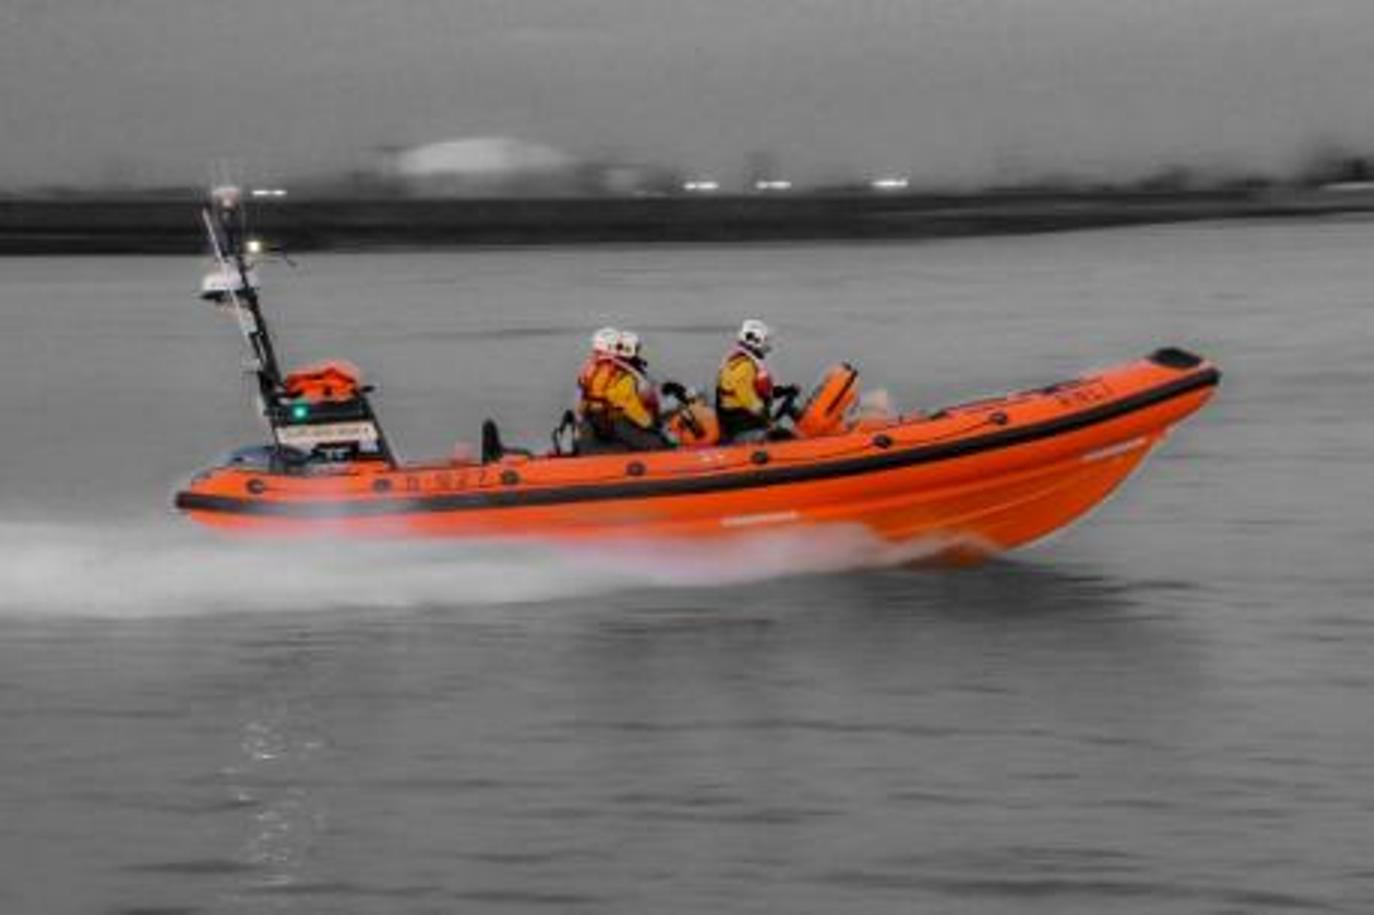 The Gravesend RNLI rushed to the scene